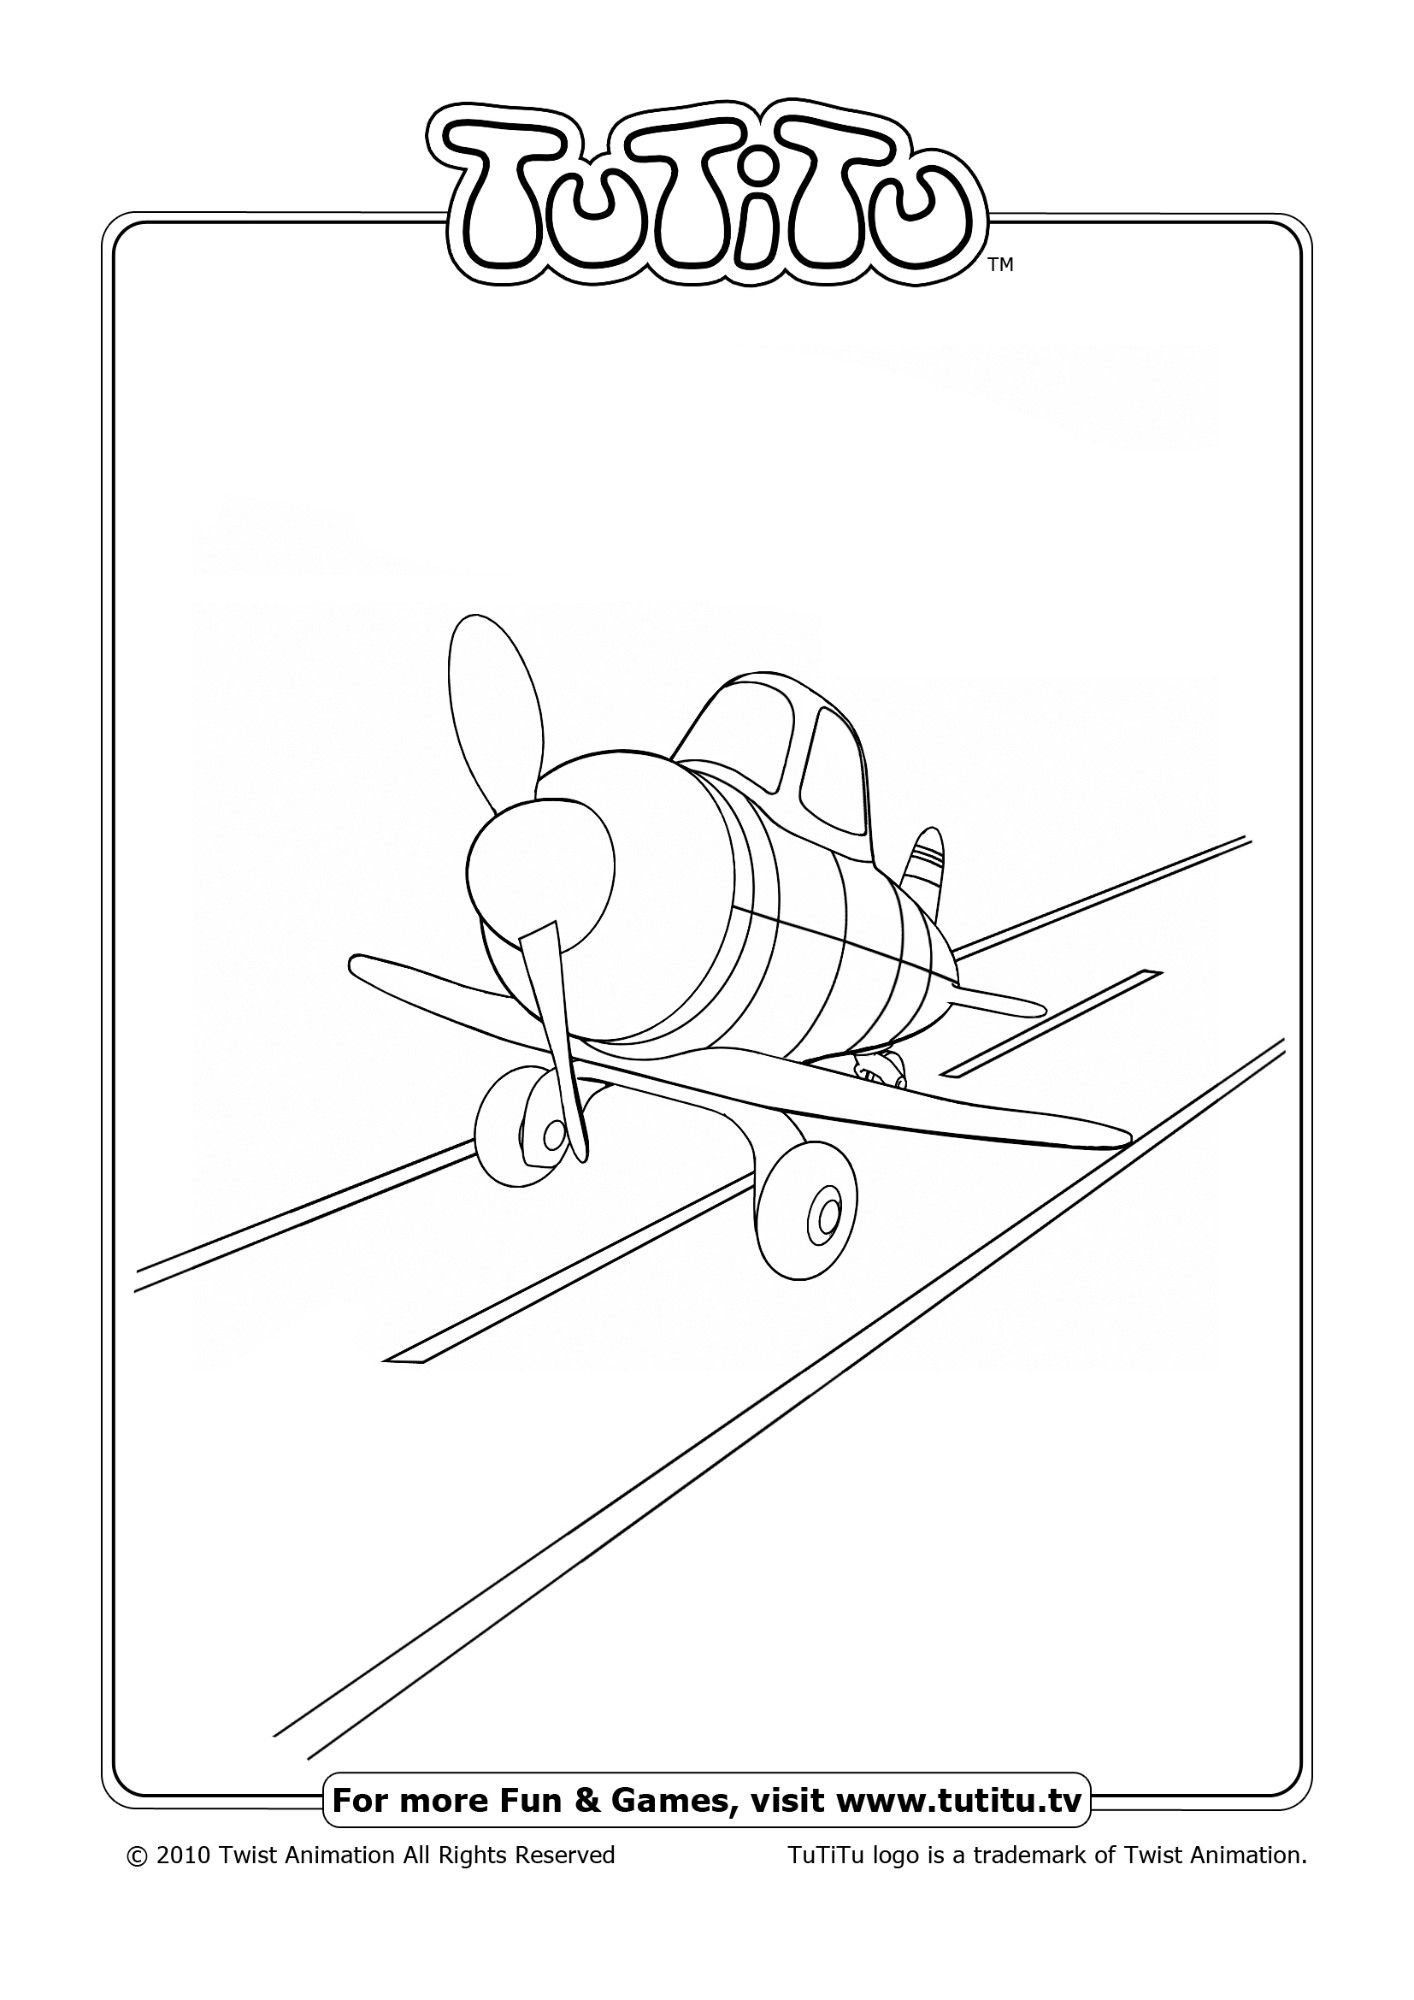 tutitu coloring pages for kids - photo#1